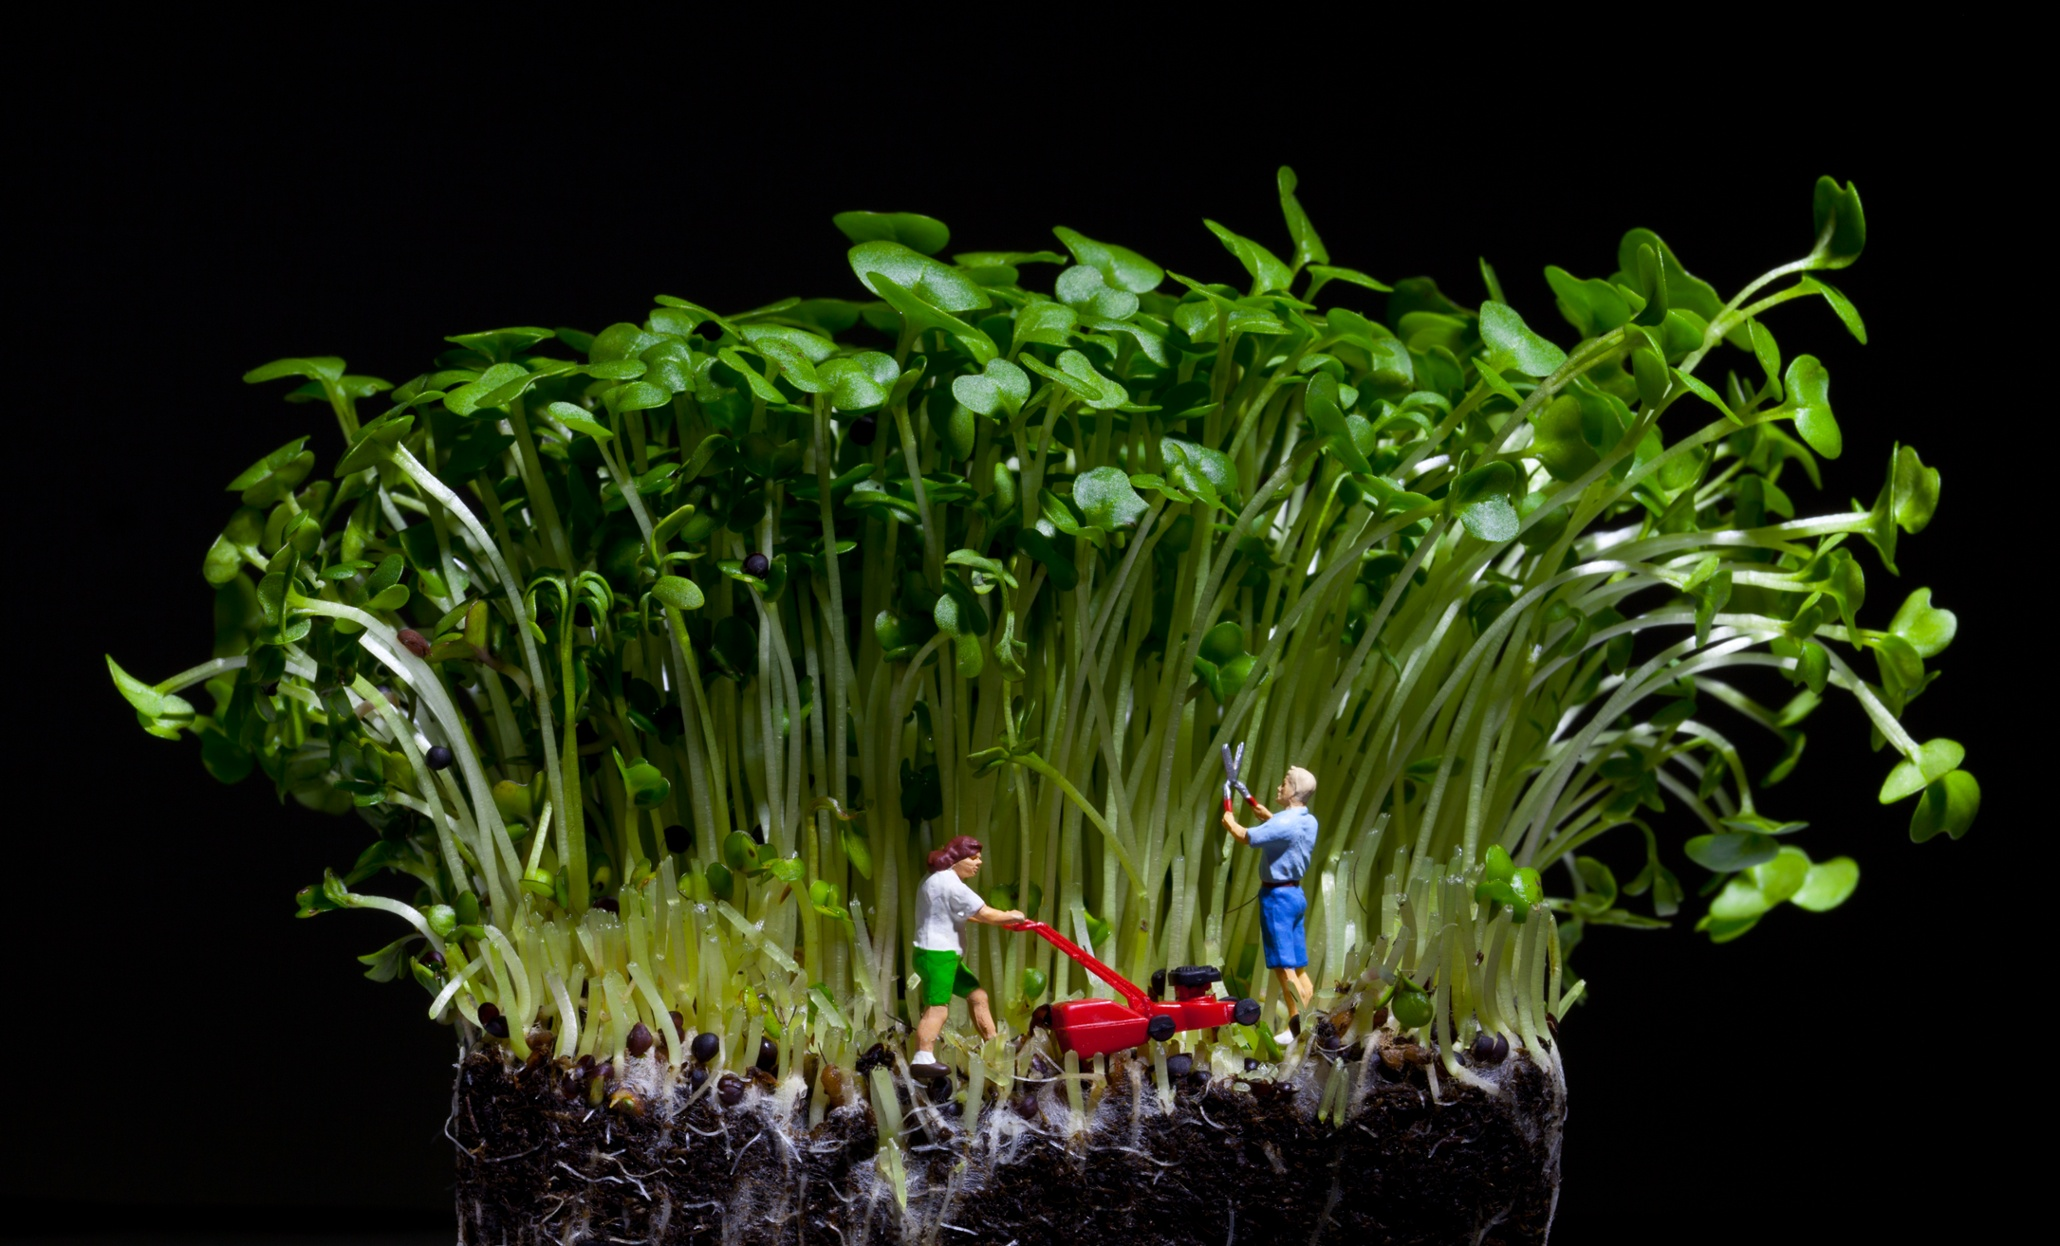 David gilliver 39 s little people in pictures art and design the guardian for Tending to the garden